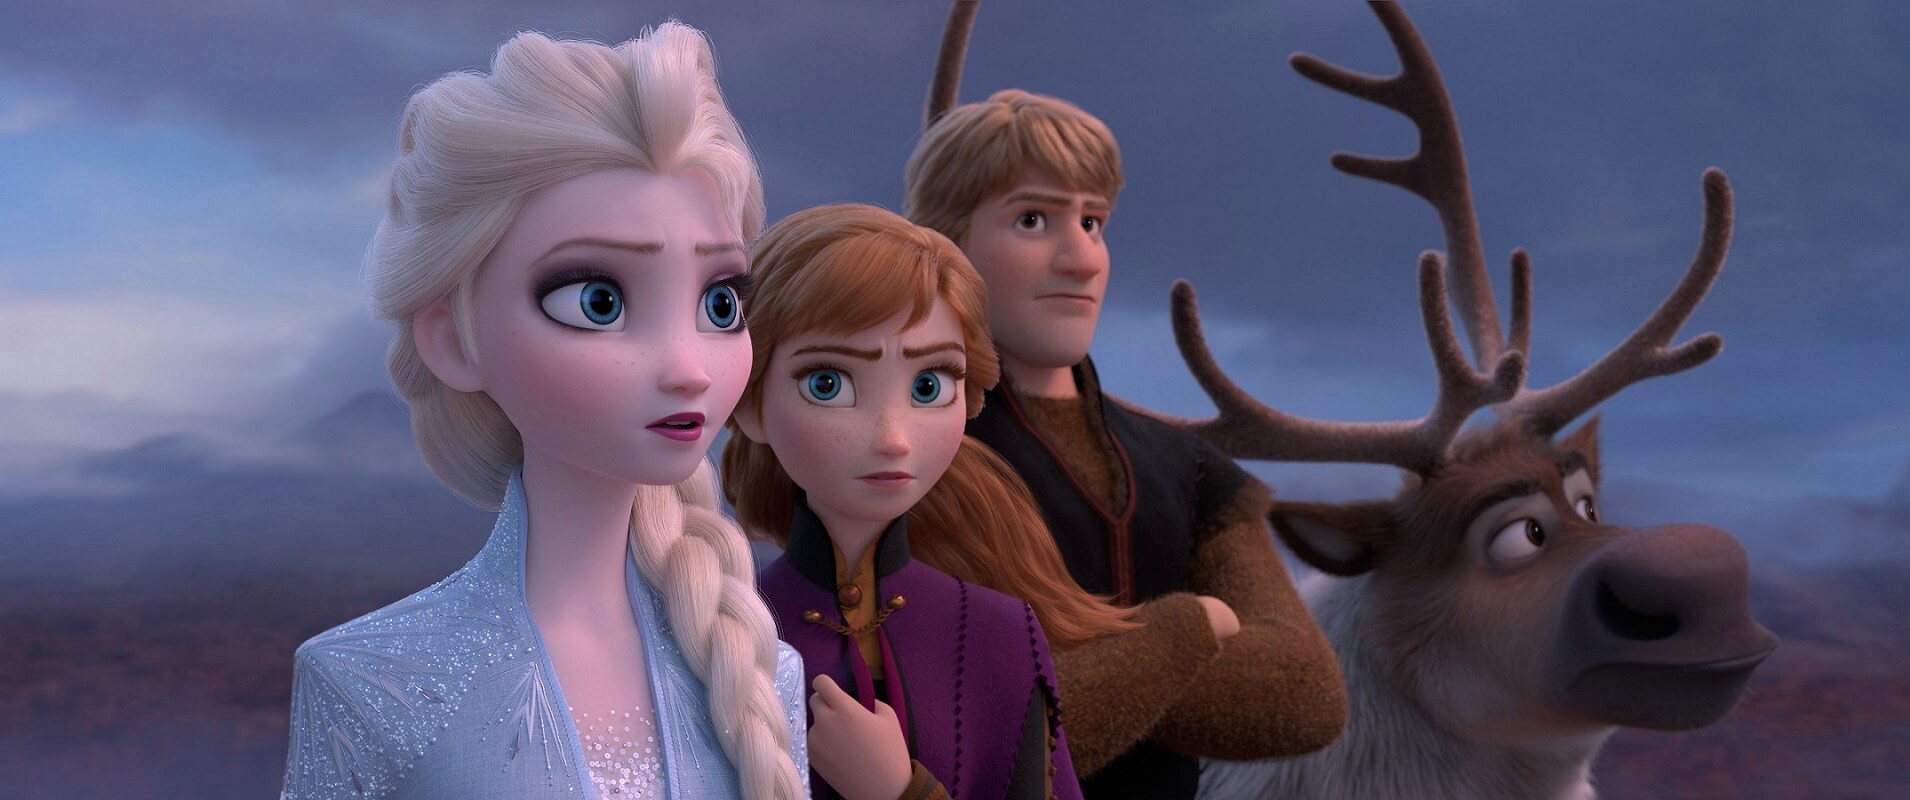 Frozen 2 to be released in America and Japan at the same